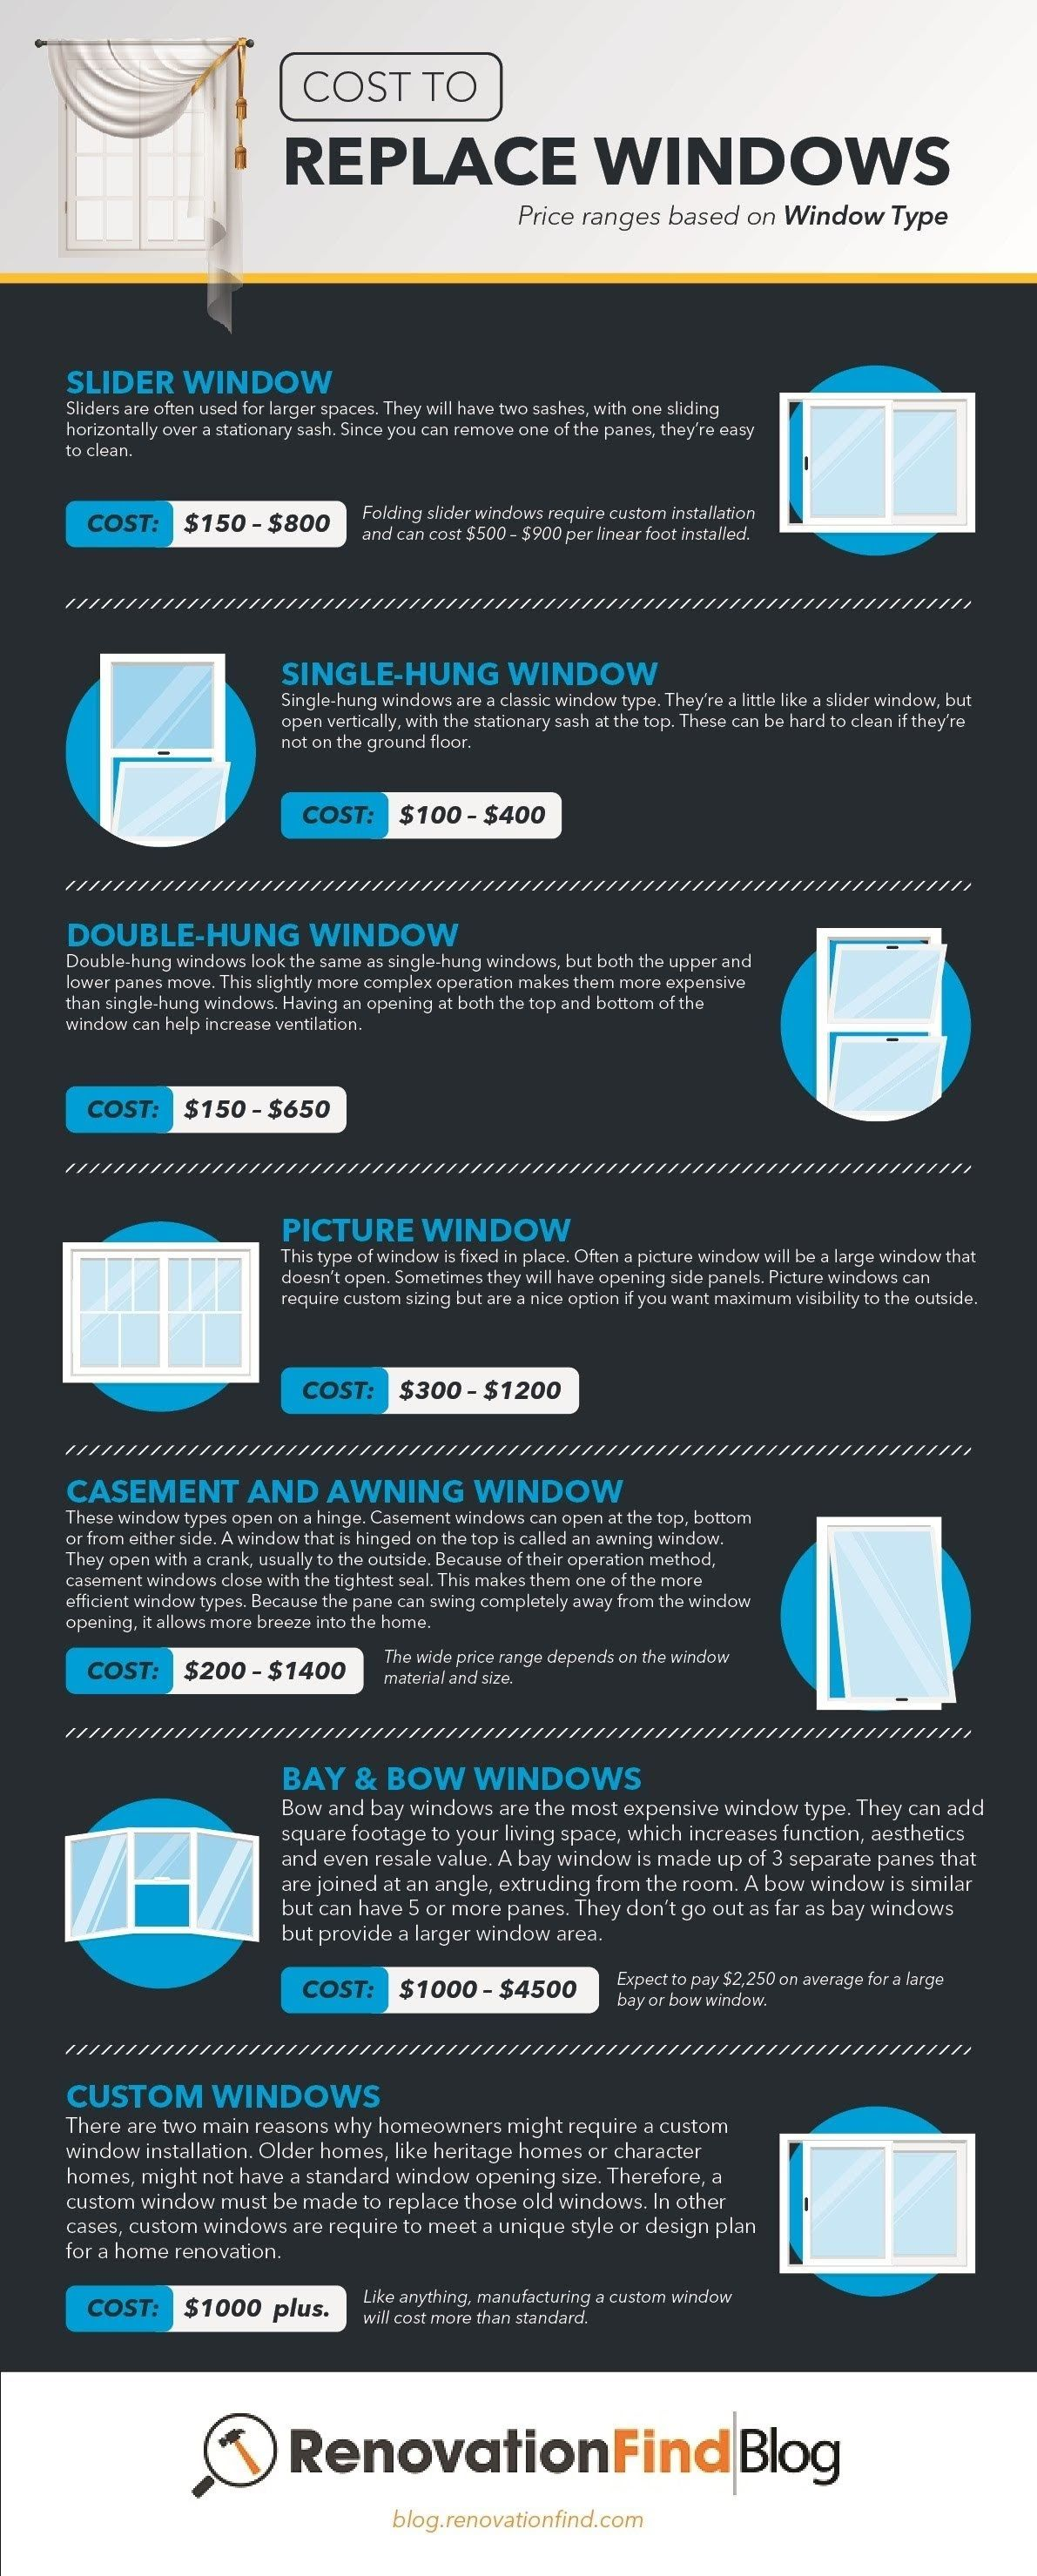 How much does it cost to replace windows infographic